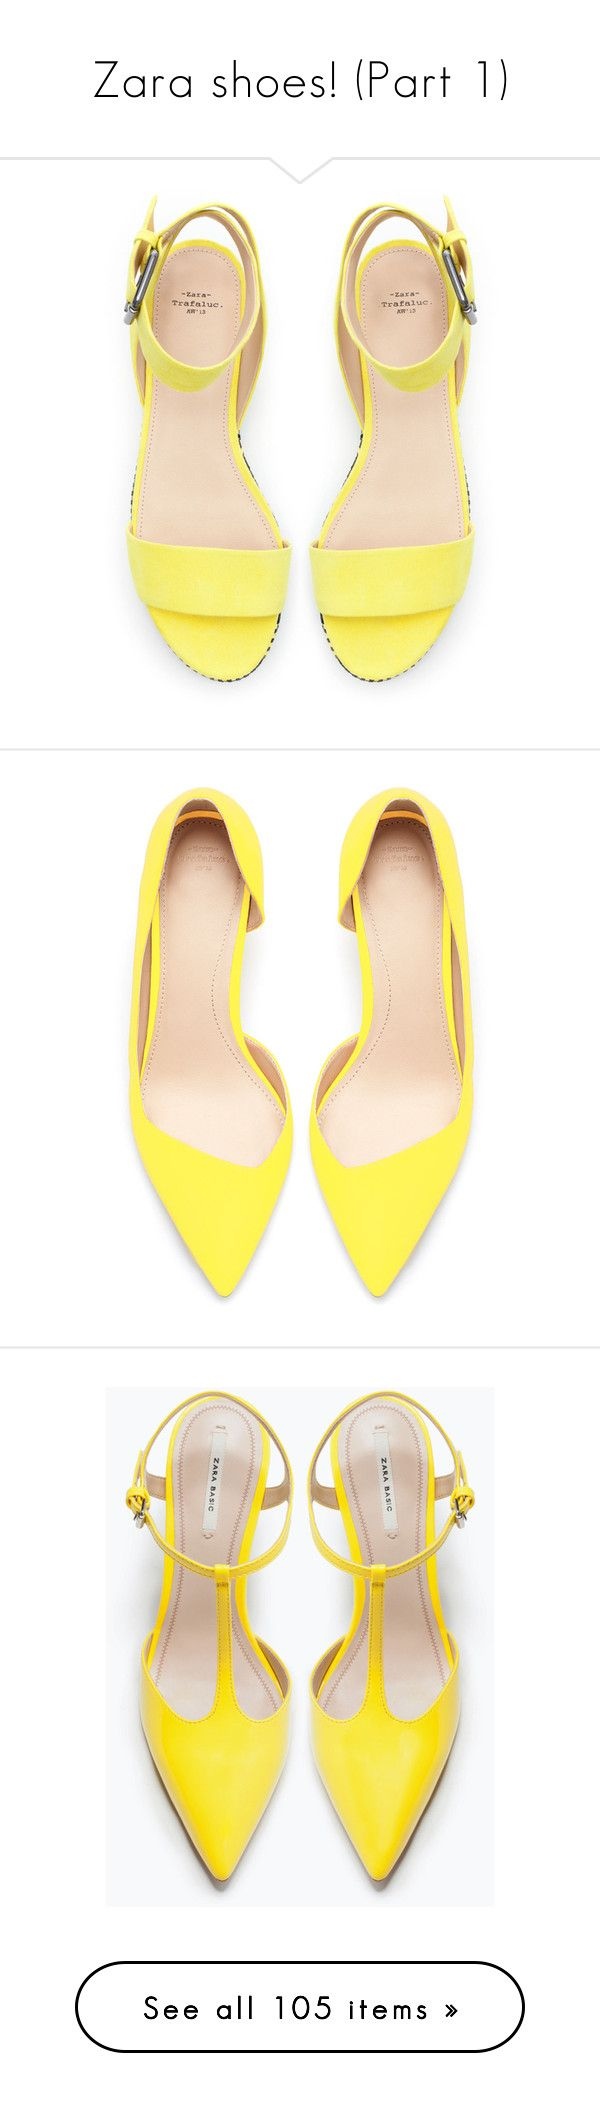 """Zara shoes! (Part 1)"" by blueladybird ❤ liked on Polyvore featuring shoes, sandals, heels, flats, yellow, flat heel shoes, yellow flats, zara footwear, zara sandals and flats sandals"